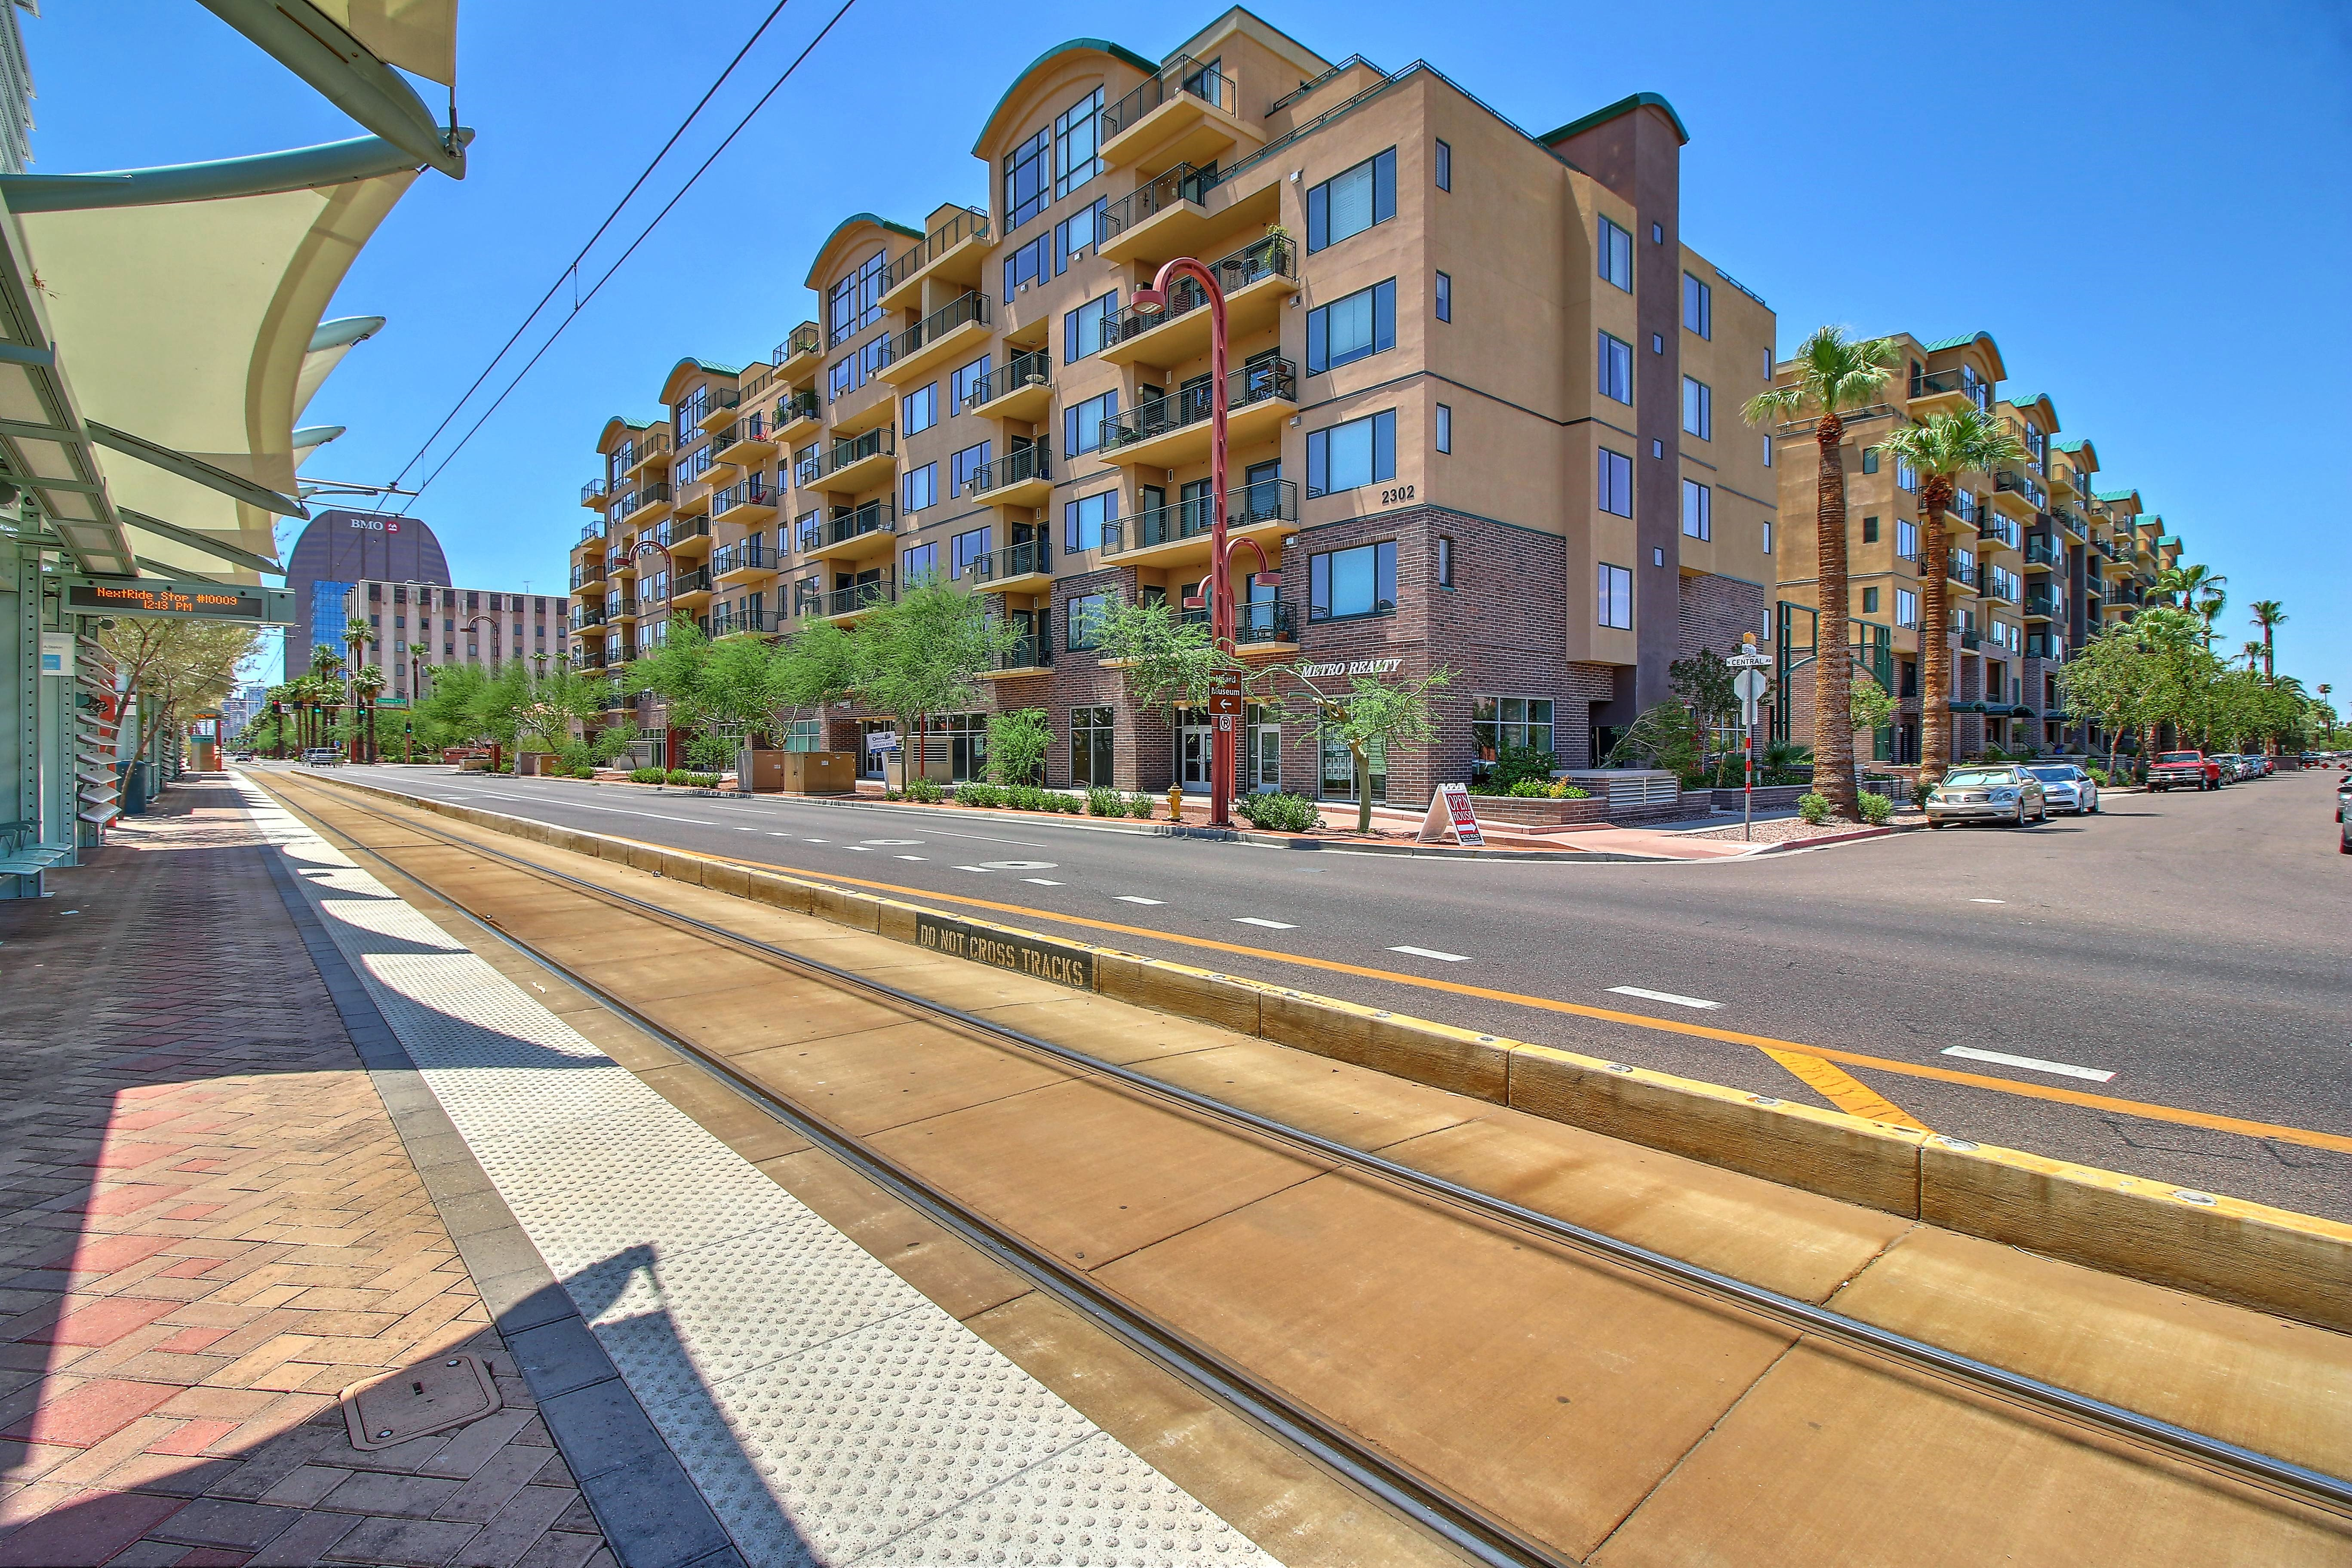 Tapestry,Central,Midrise,condo,luxury,downtown,phoenix,willo,historic